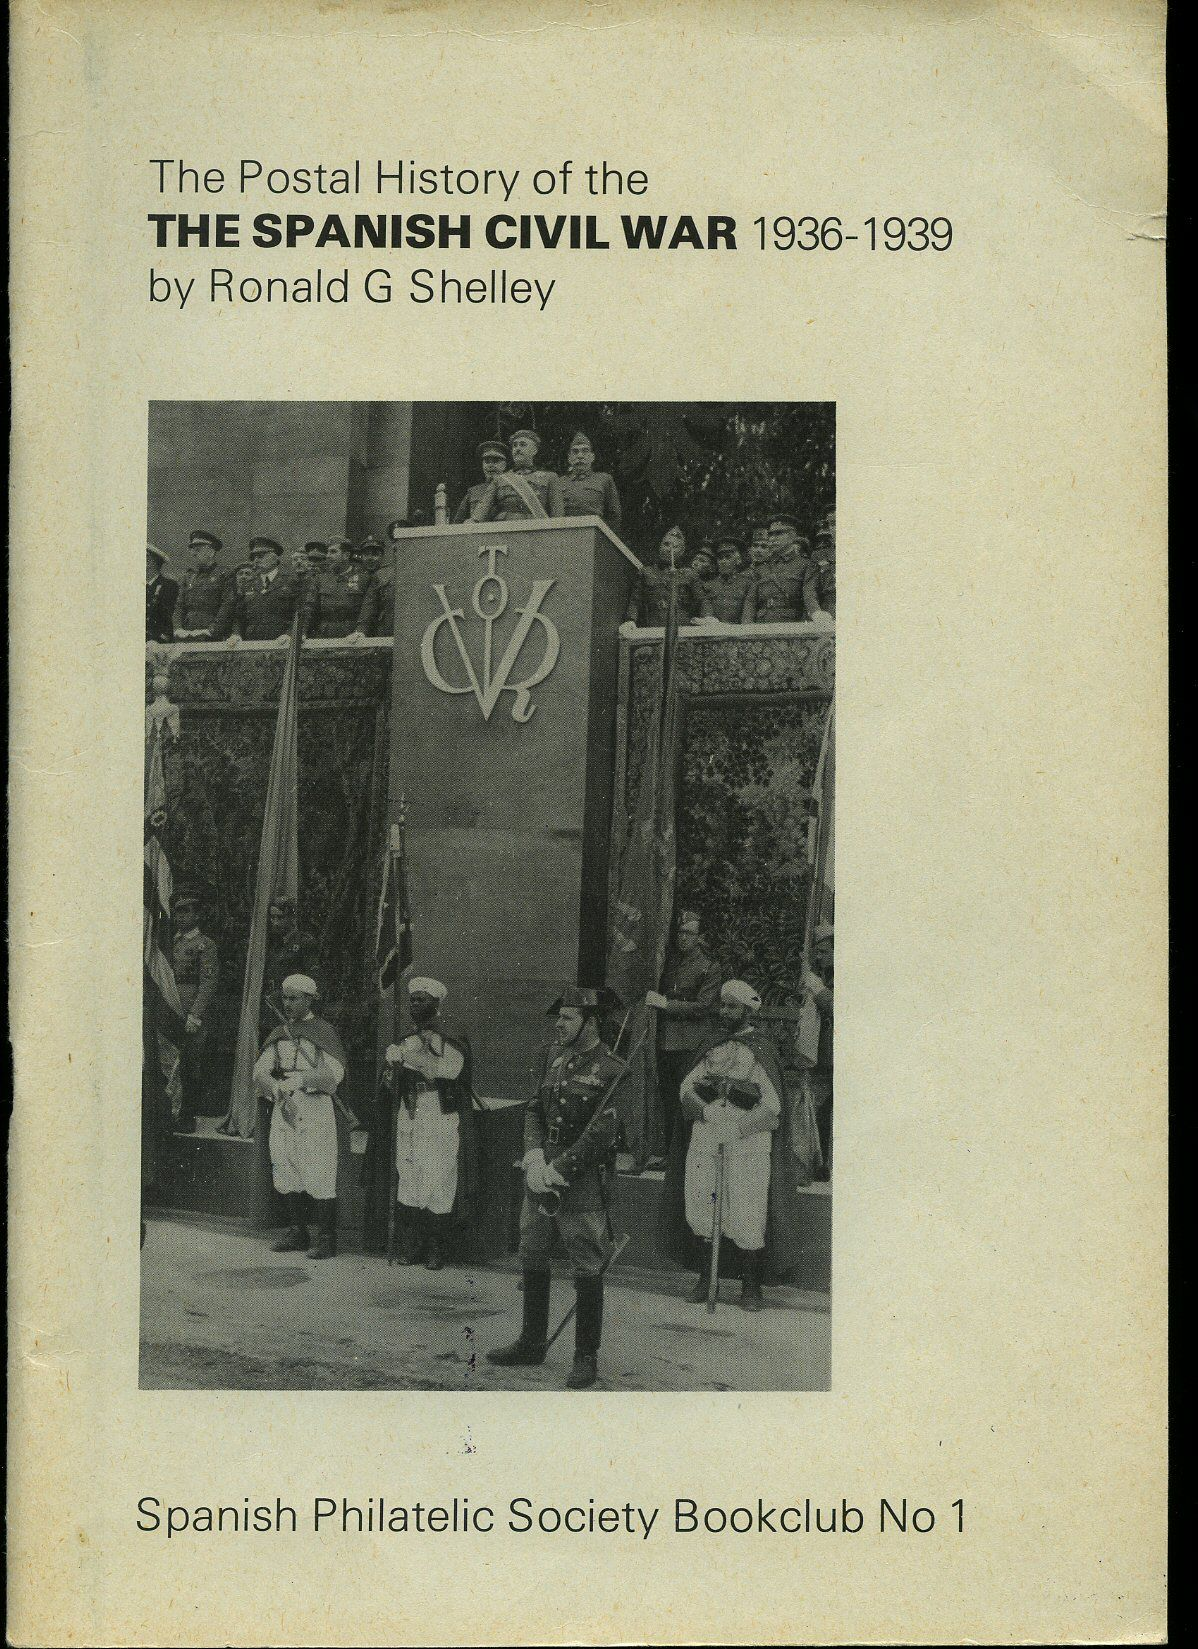 an analysis of the spanish civil war in 1936 1939 The spanish republic and the civil war, 1931-1939 by by gabriel jackons  and critical analysis at this website  during the spanish civil war (1936-39), almost .